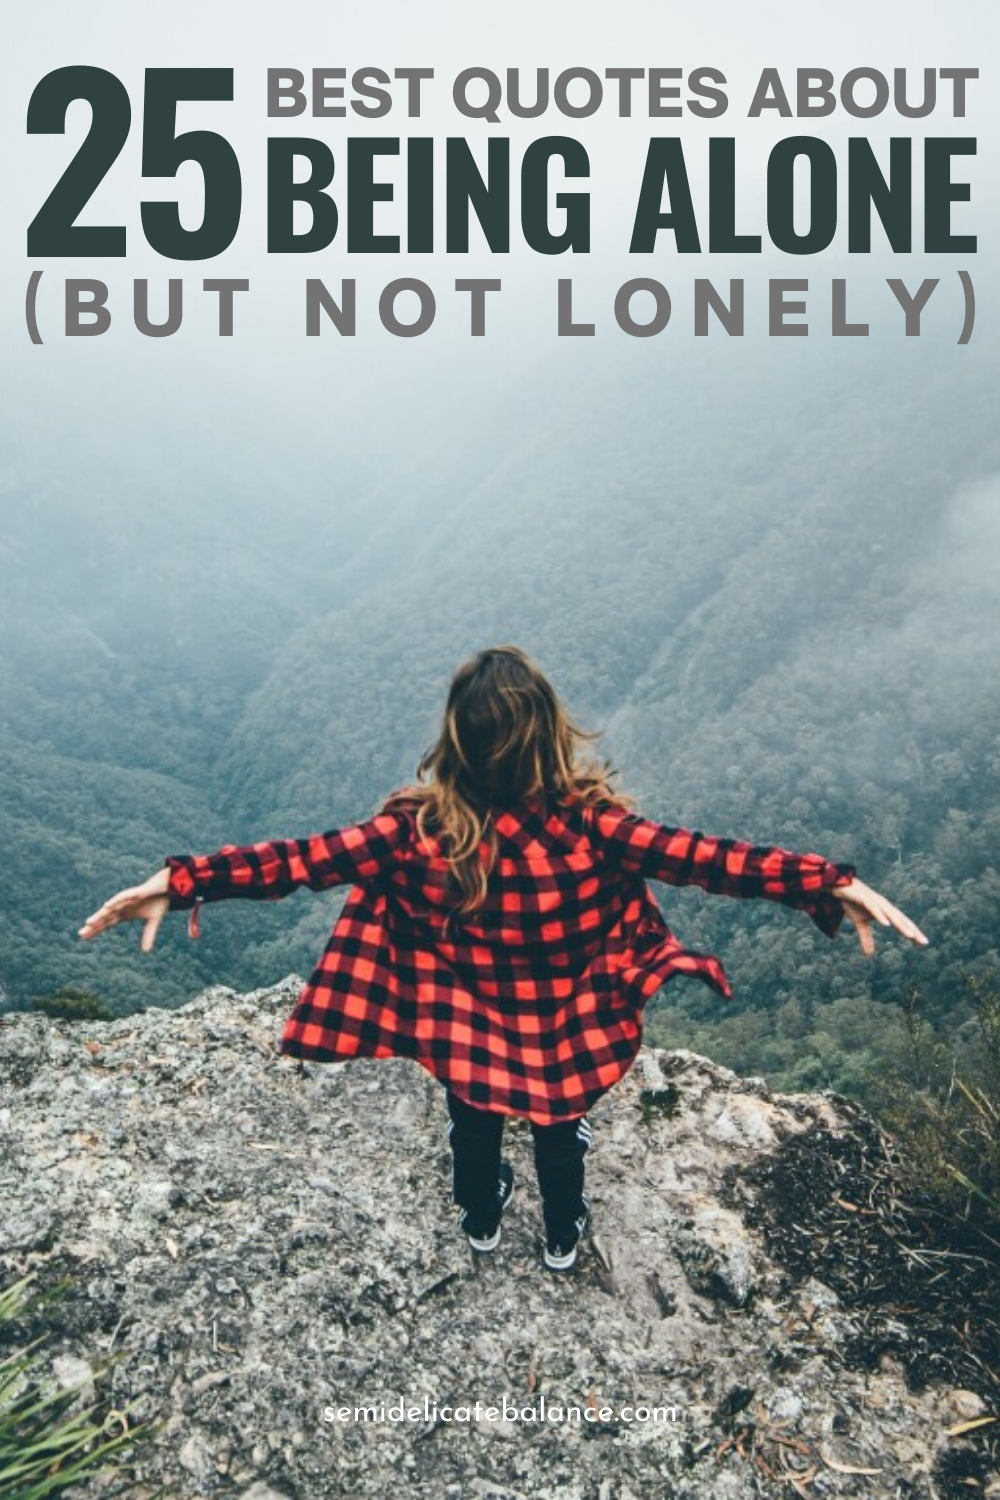 Best Quotes About Being Alone (But Not Lonely) #quote #quotes #beingalone #solitude #qotd #metime